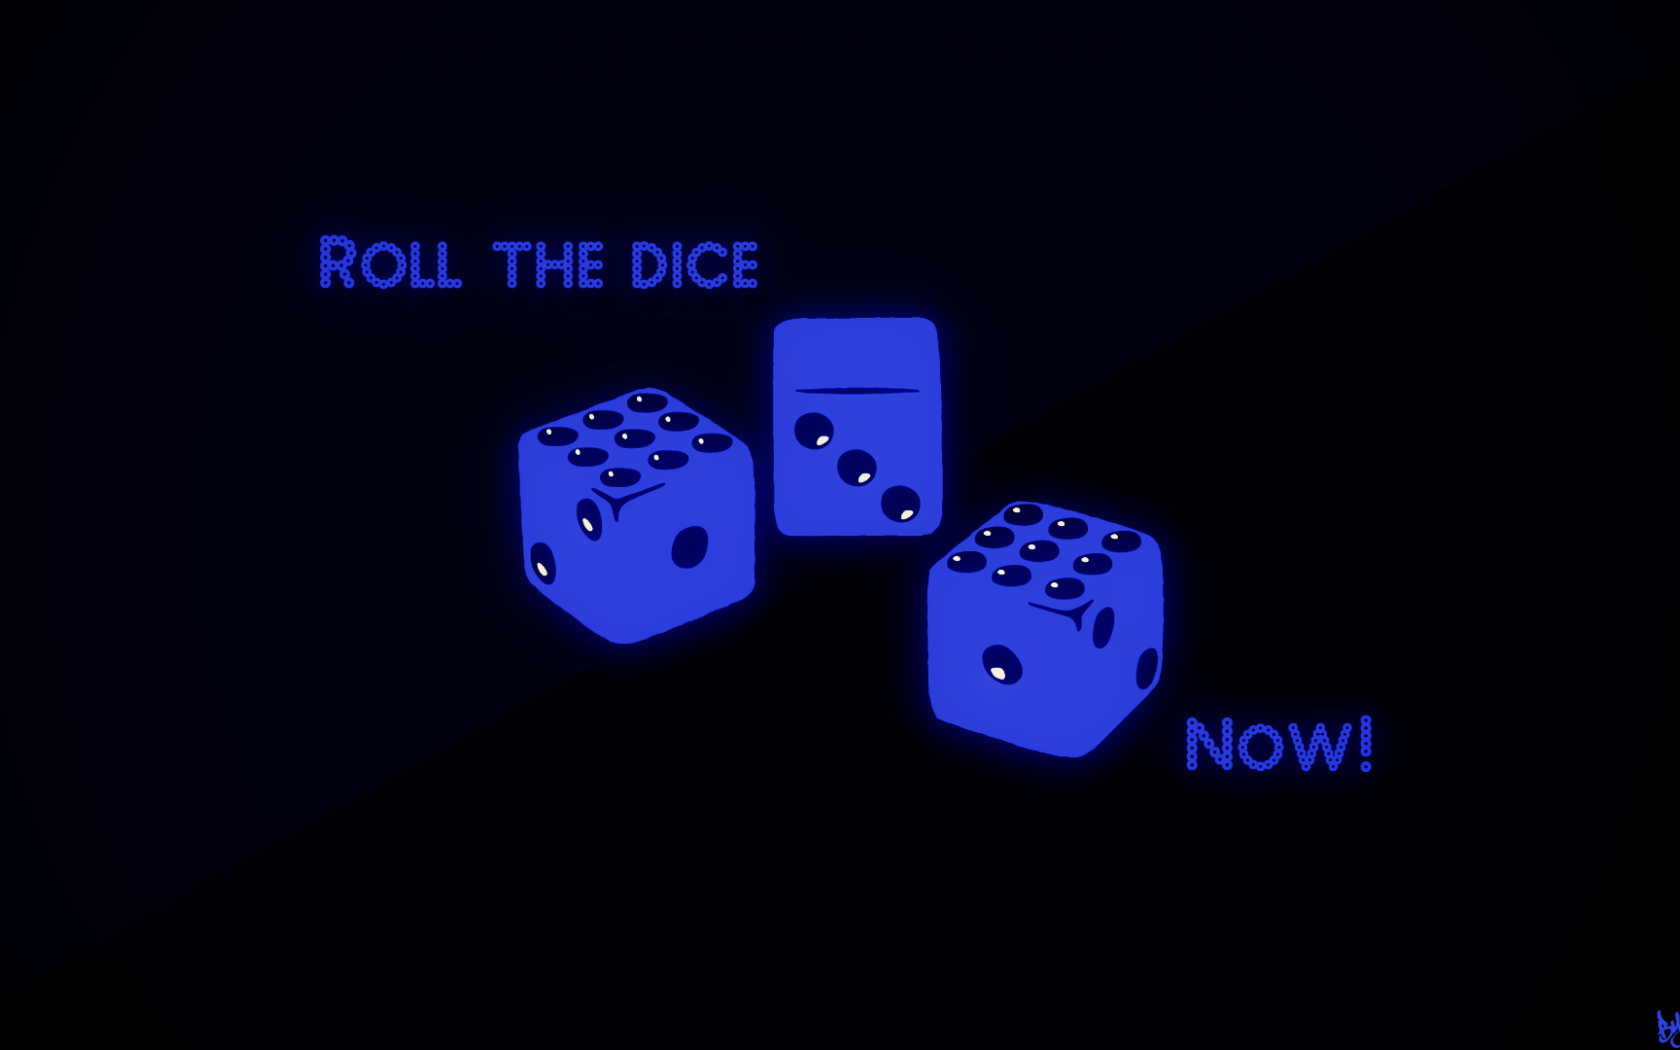 Free Download Roll The Dice Now Wallpaper By Theskyfx 1920x1080